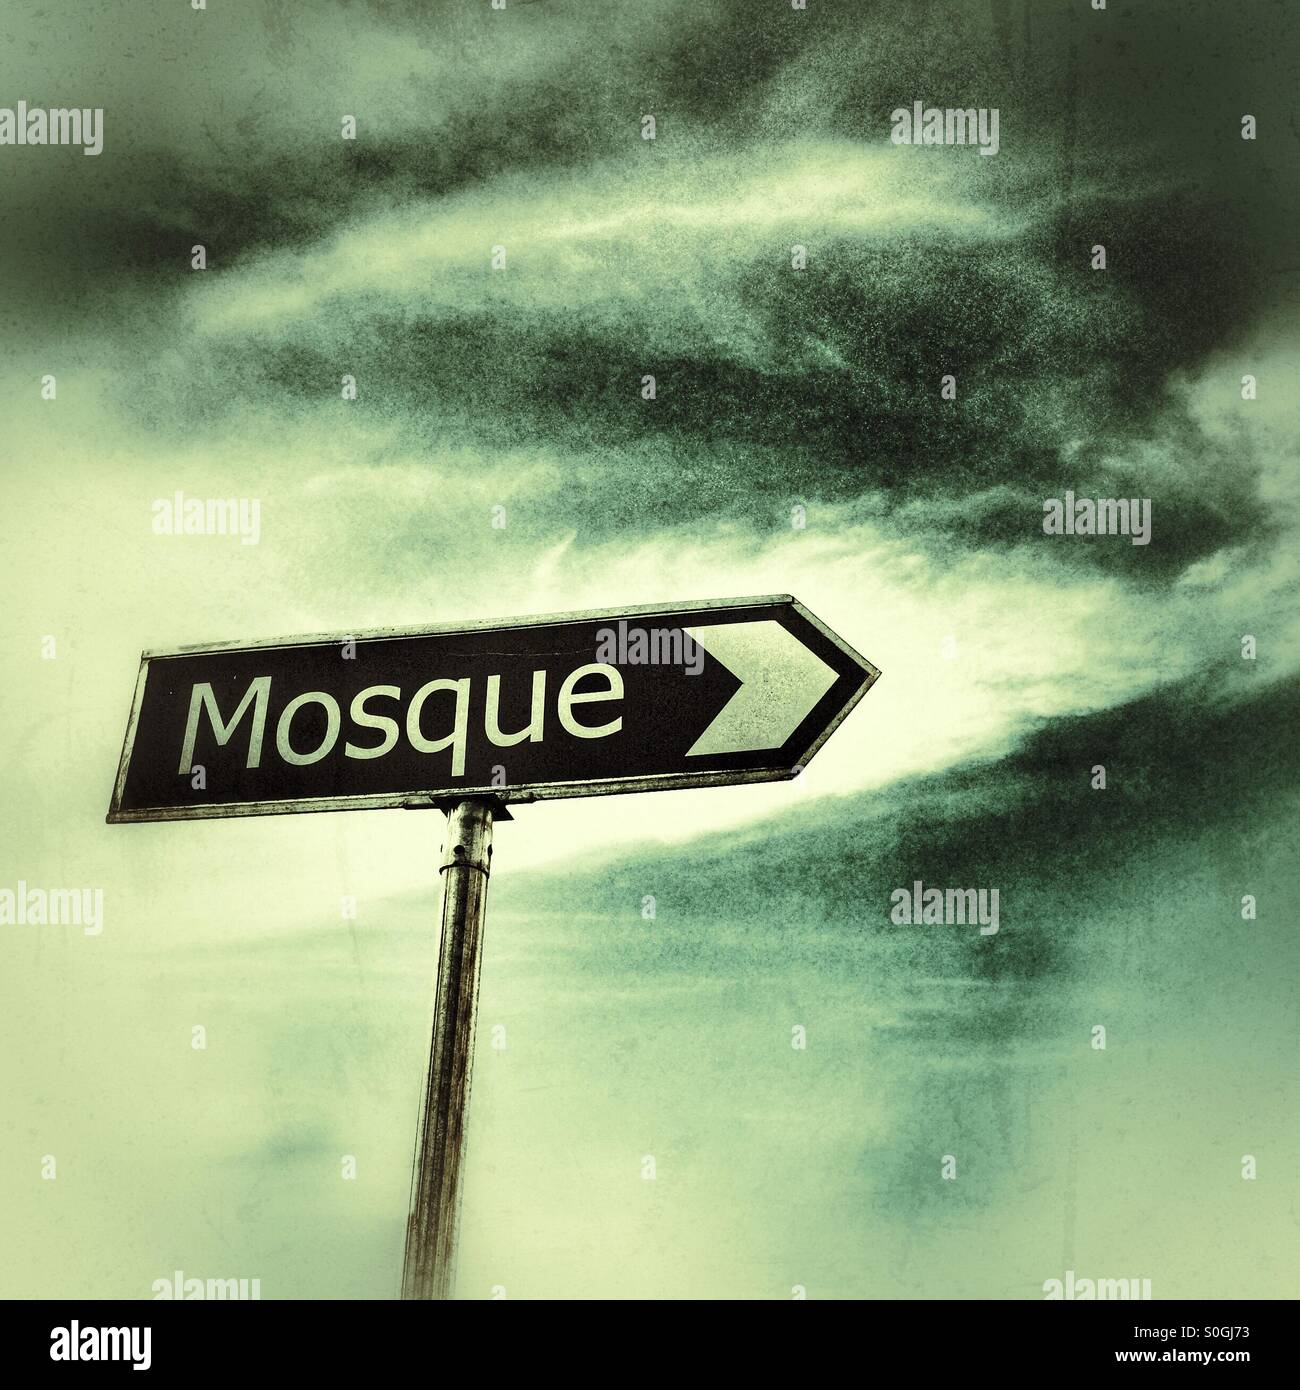 Mosque sign. - Stock Image